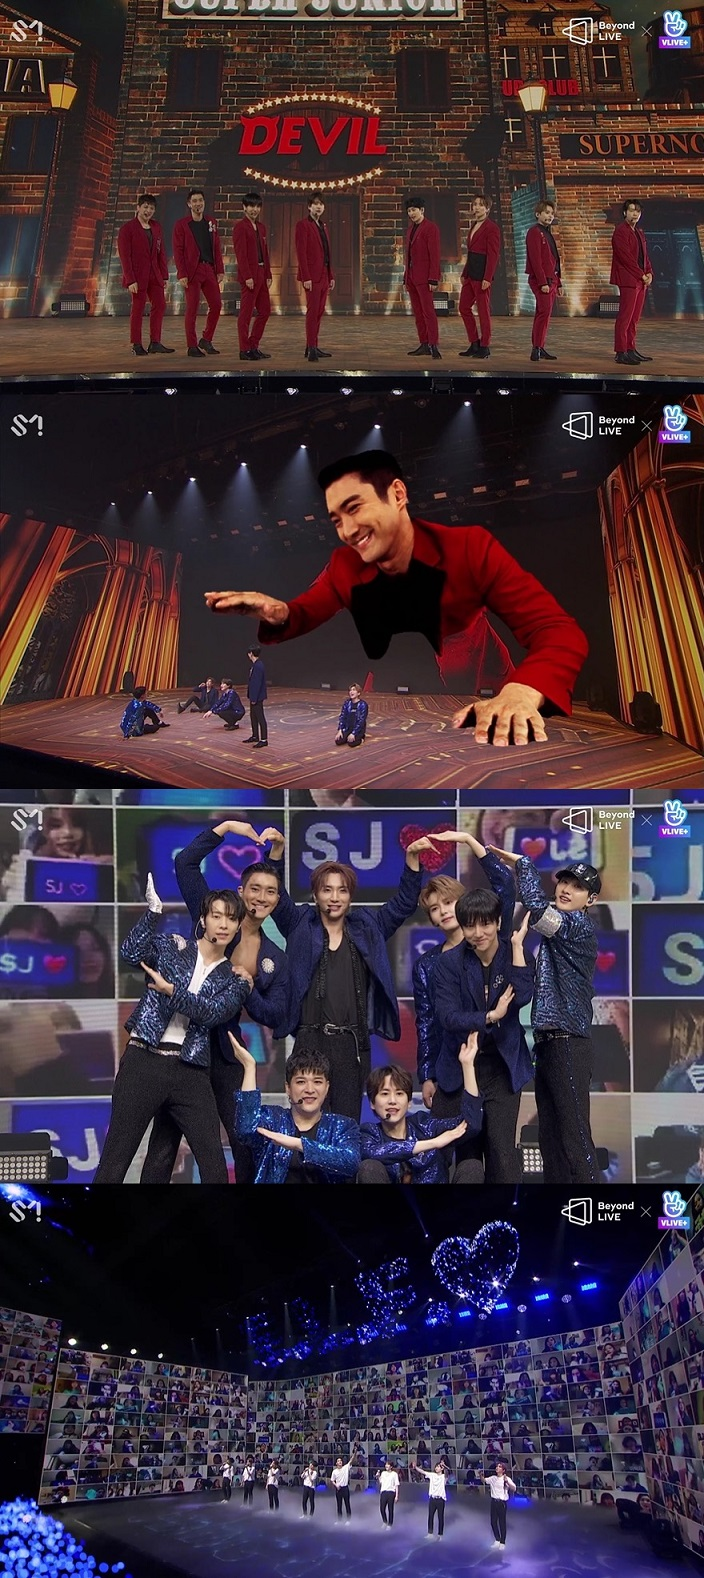 [Capture 1] SUPER JUNIOR 'Beyond LIVE'